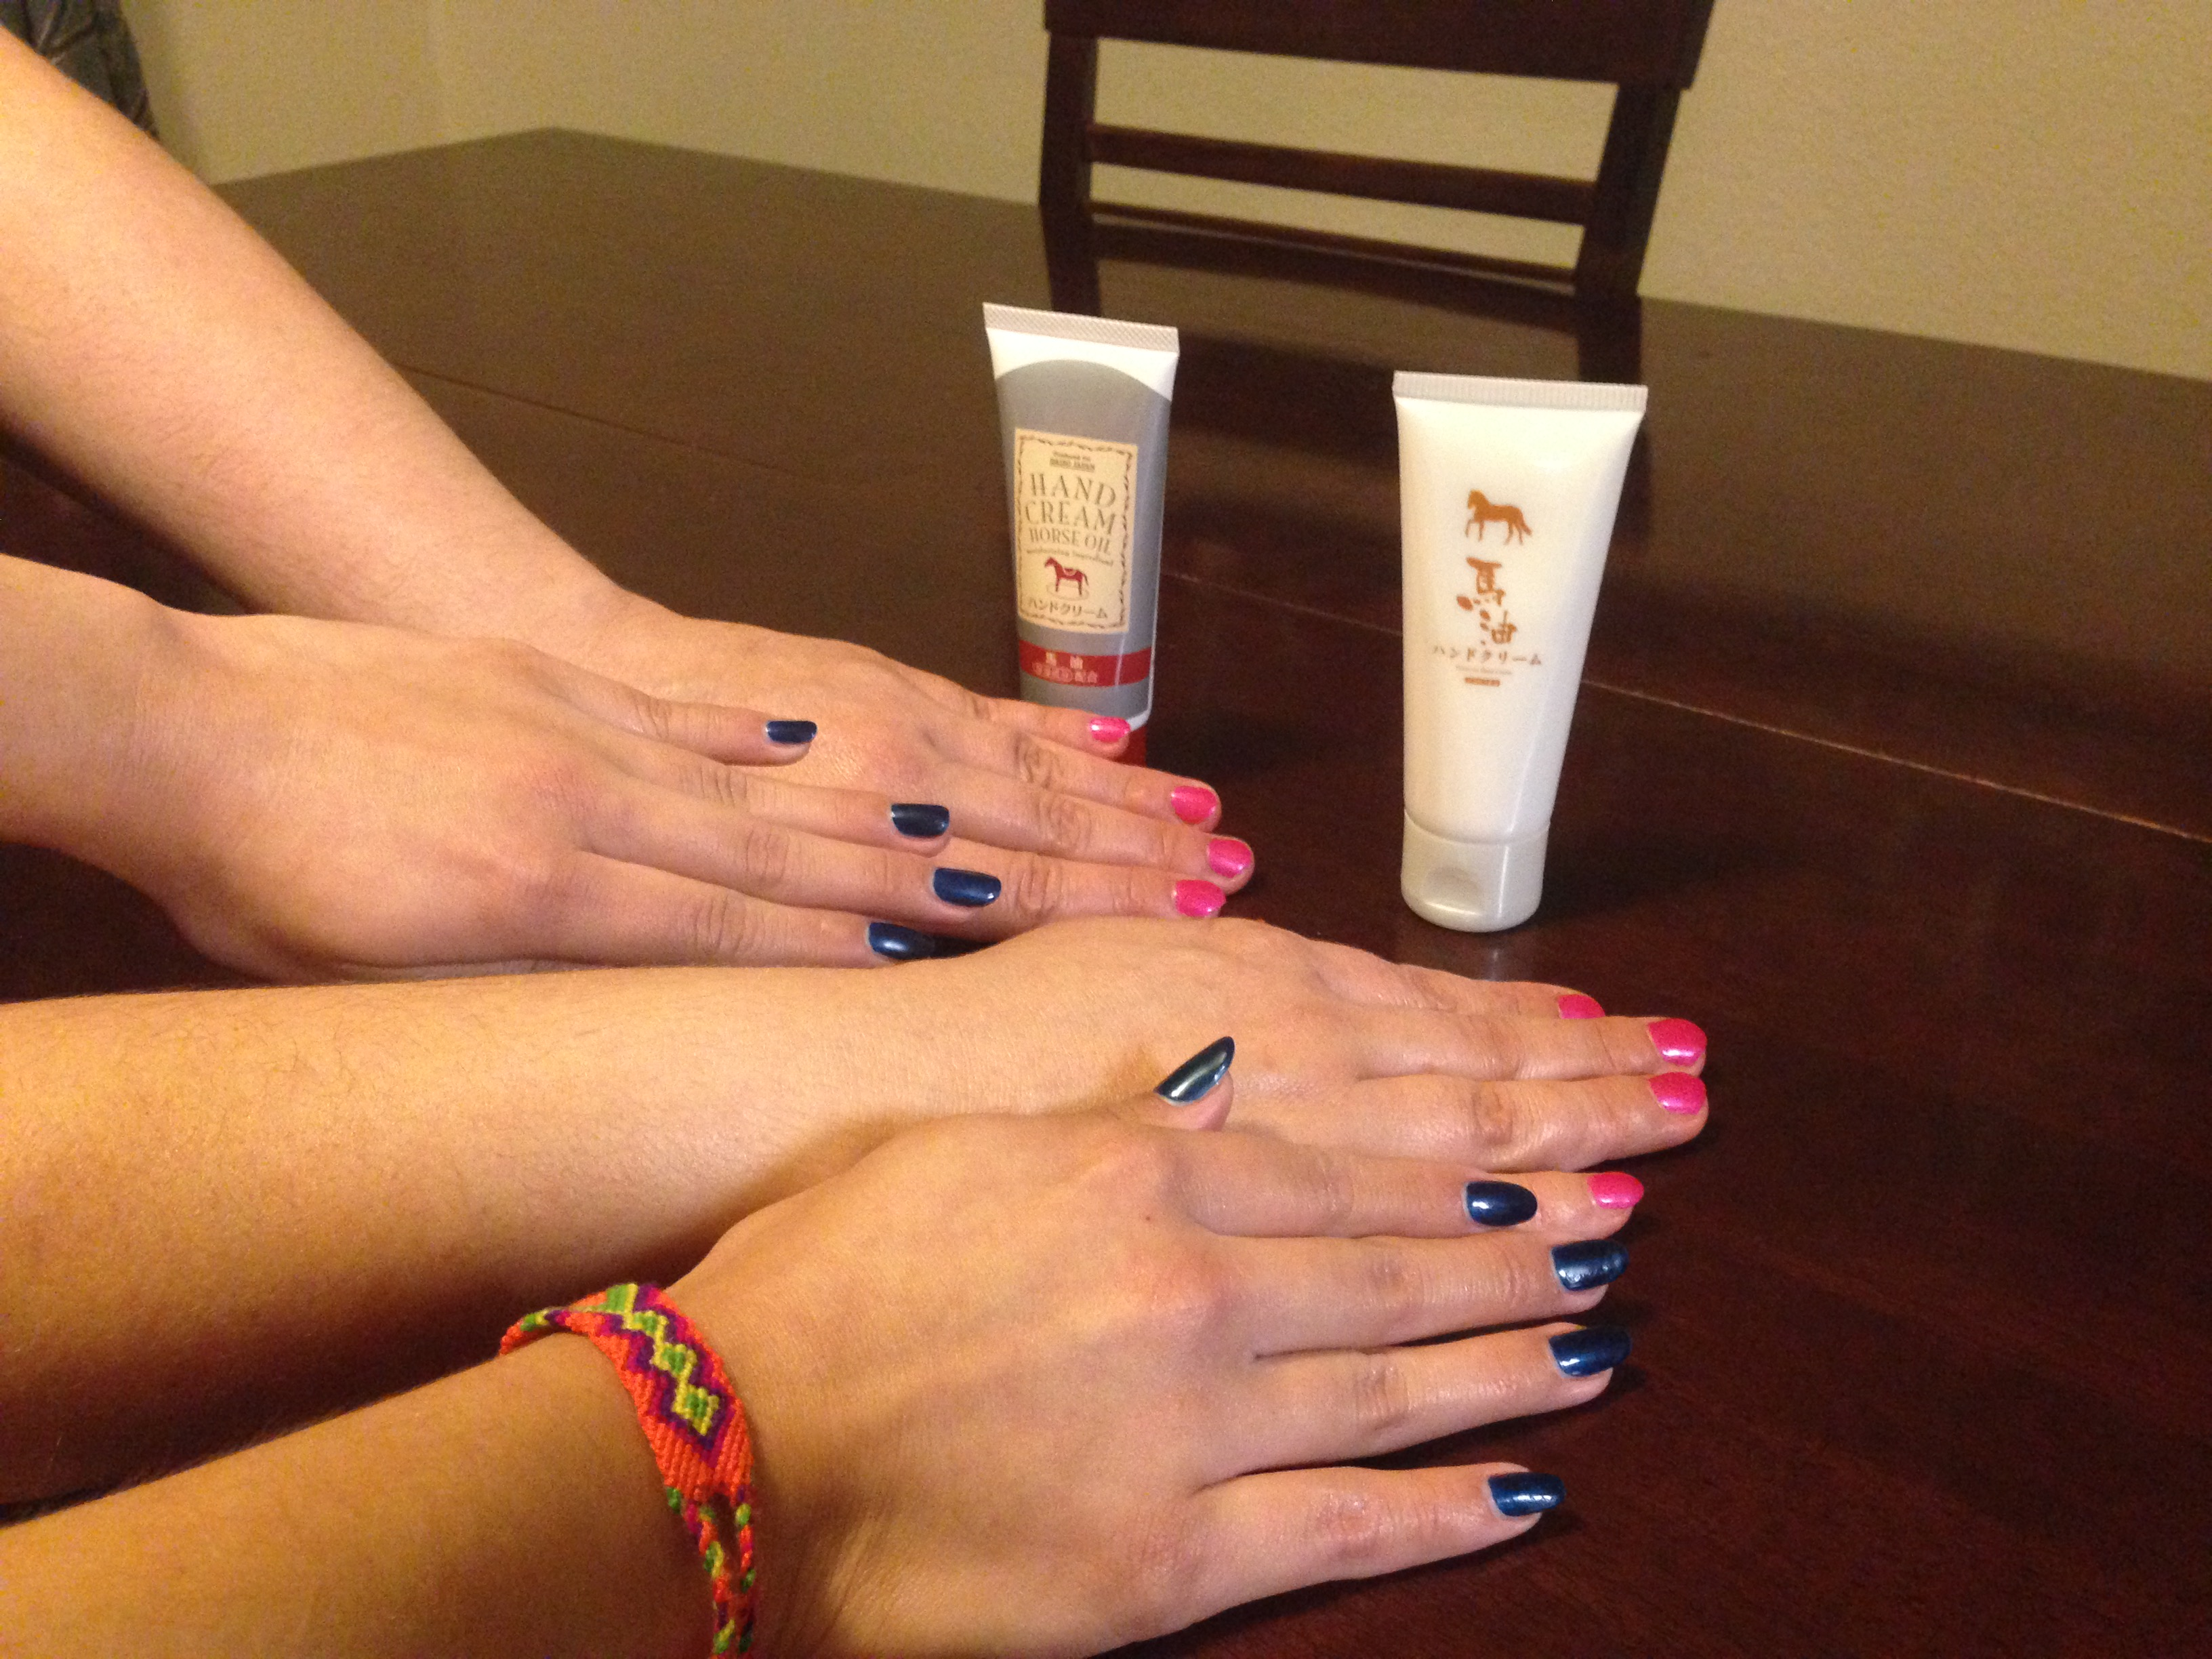 hand models trying horse fat hand cream